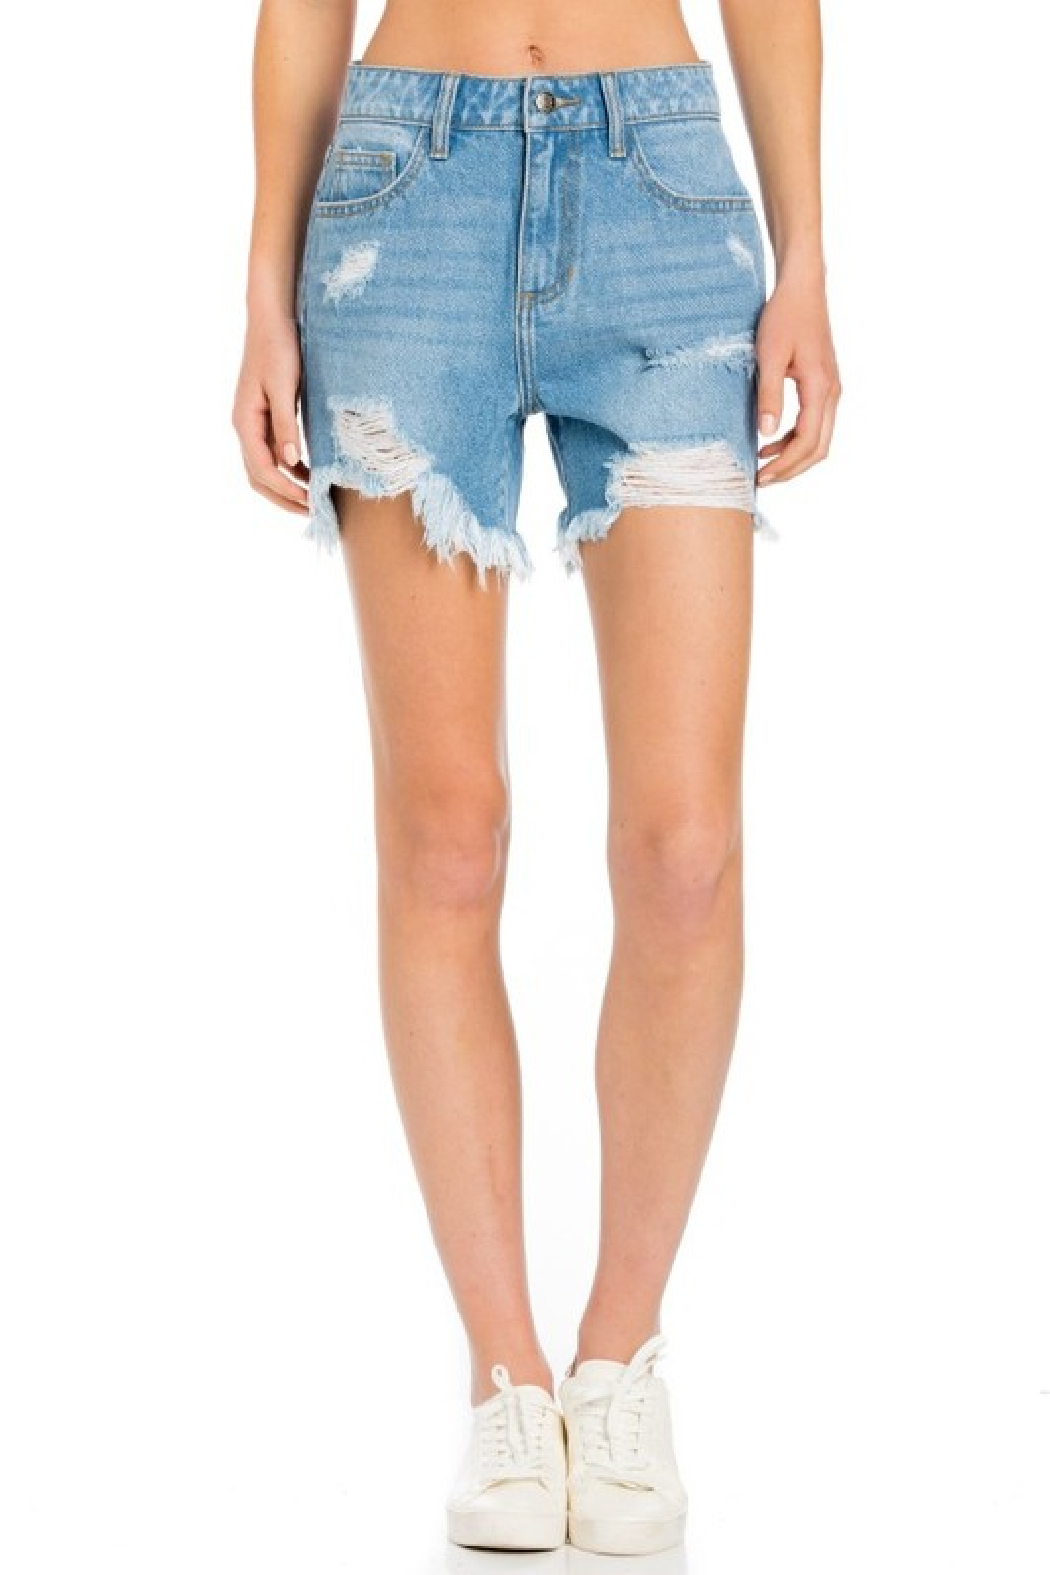 Cello Jeans High Rise Destroyed Shorts - Side Cropped Image